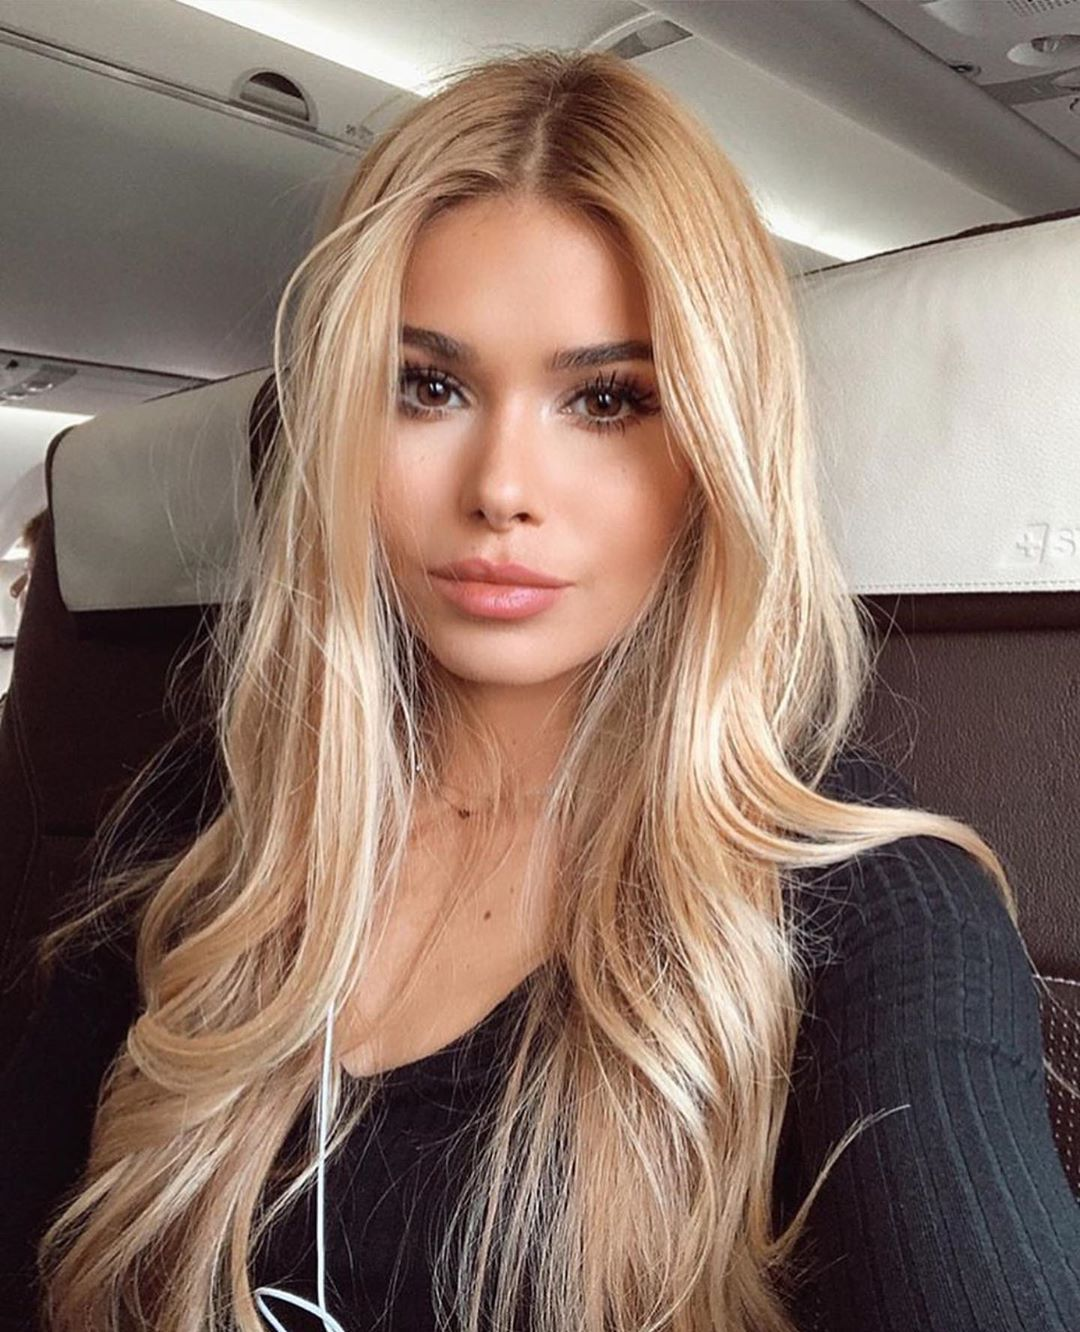 30 Blonde Hairstyles For Girls To Copy In 2020 Spring Ibaz In 2020 Hair Styles Long Hair Styles Front Lace Wigs Human Hair